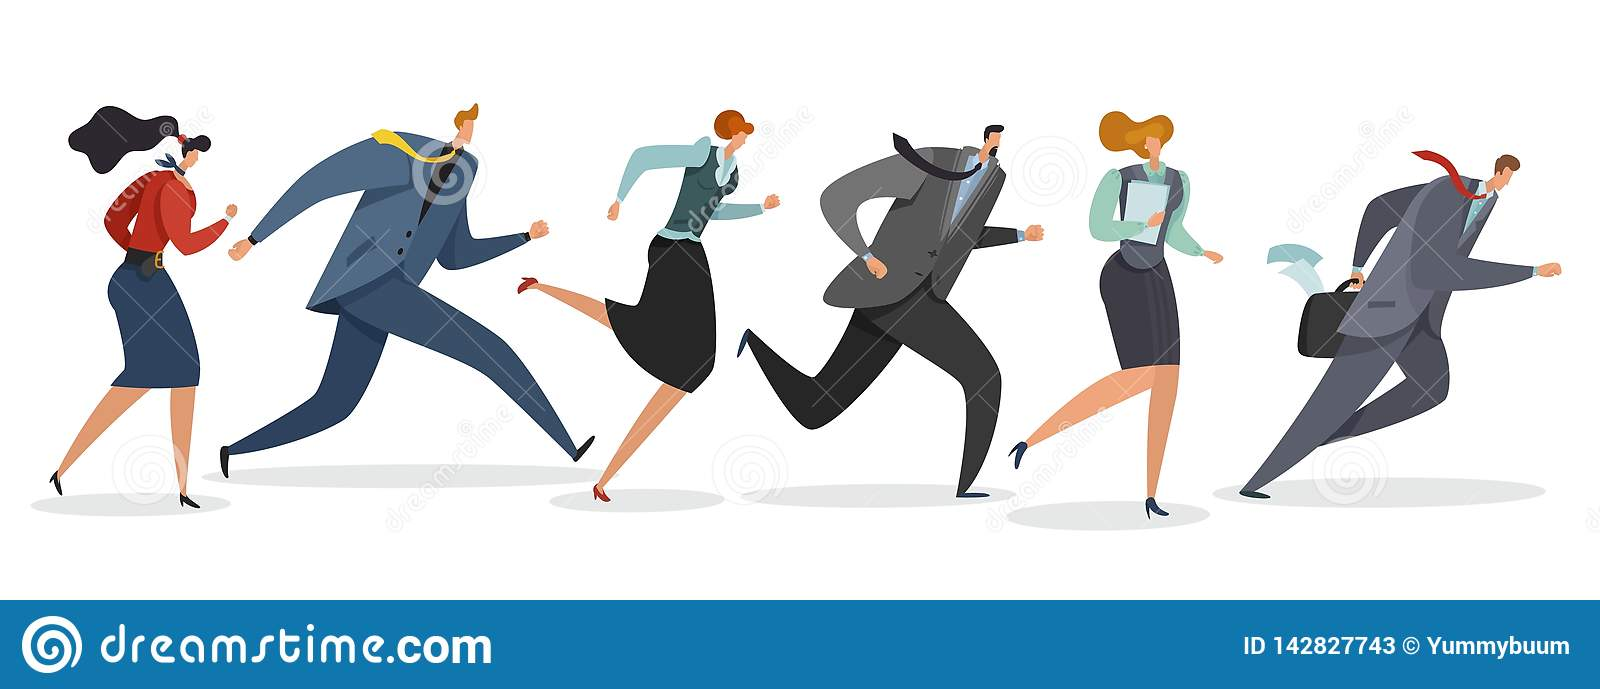 Business team running. Persons waving flag and jogging follow leader to professional triumph winning illustration